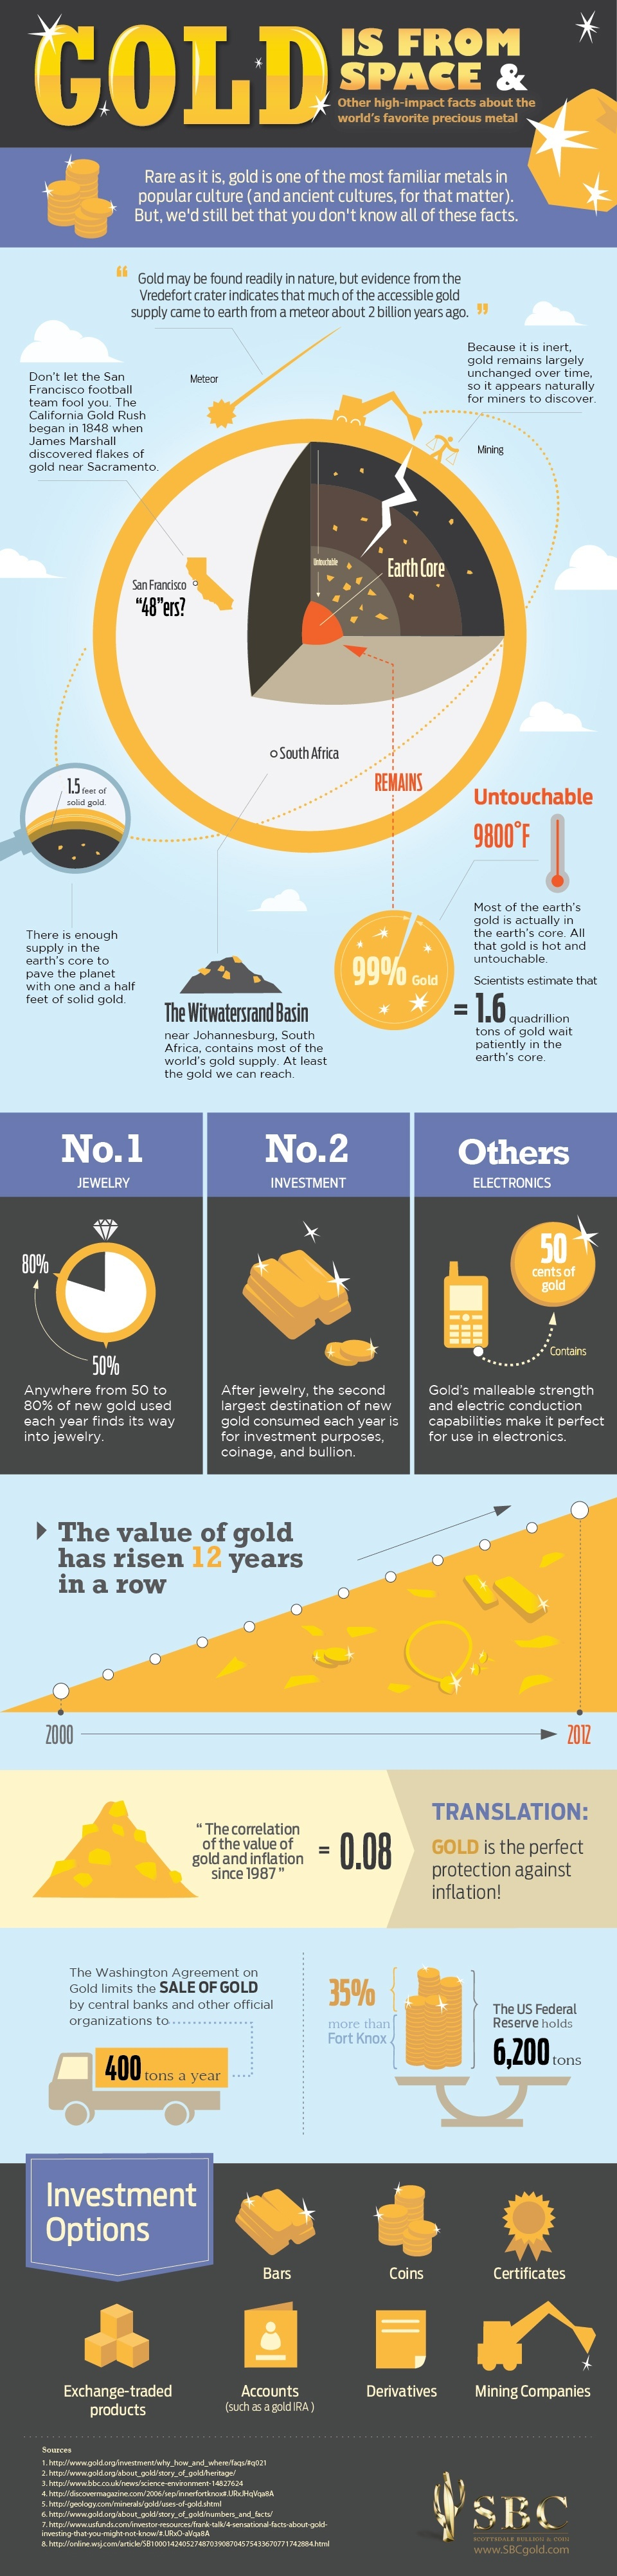 How To Invest in Gold Coins - Facts About Gold